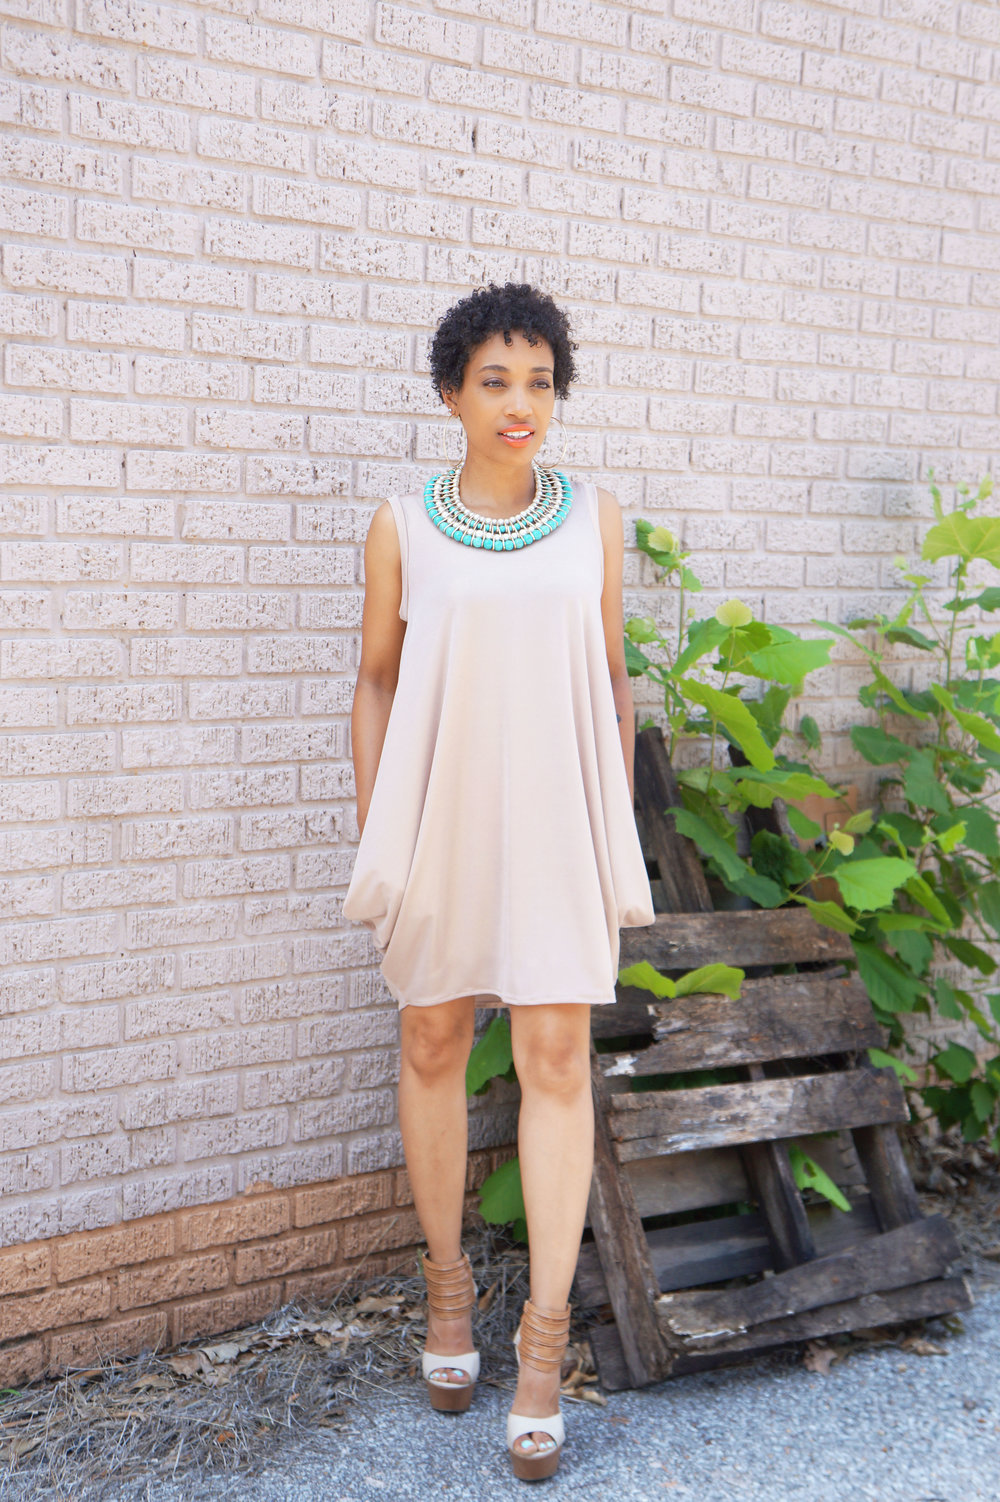 Brunch and Sew Memphis Sewing Blogger shares the draped dress inspiration